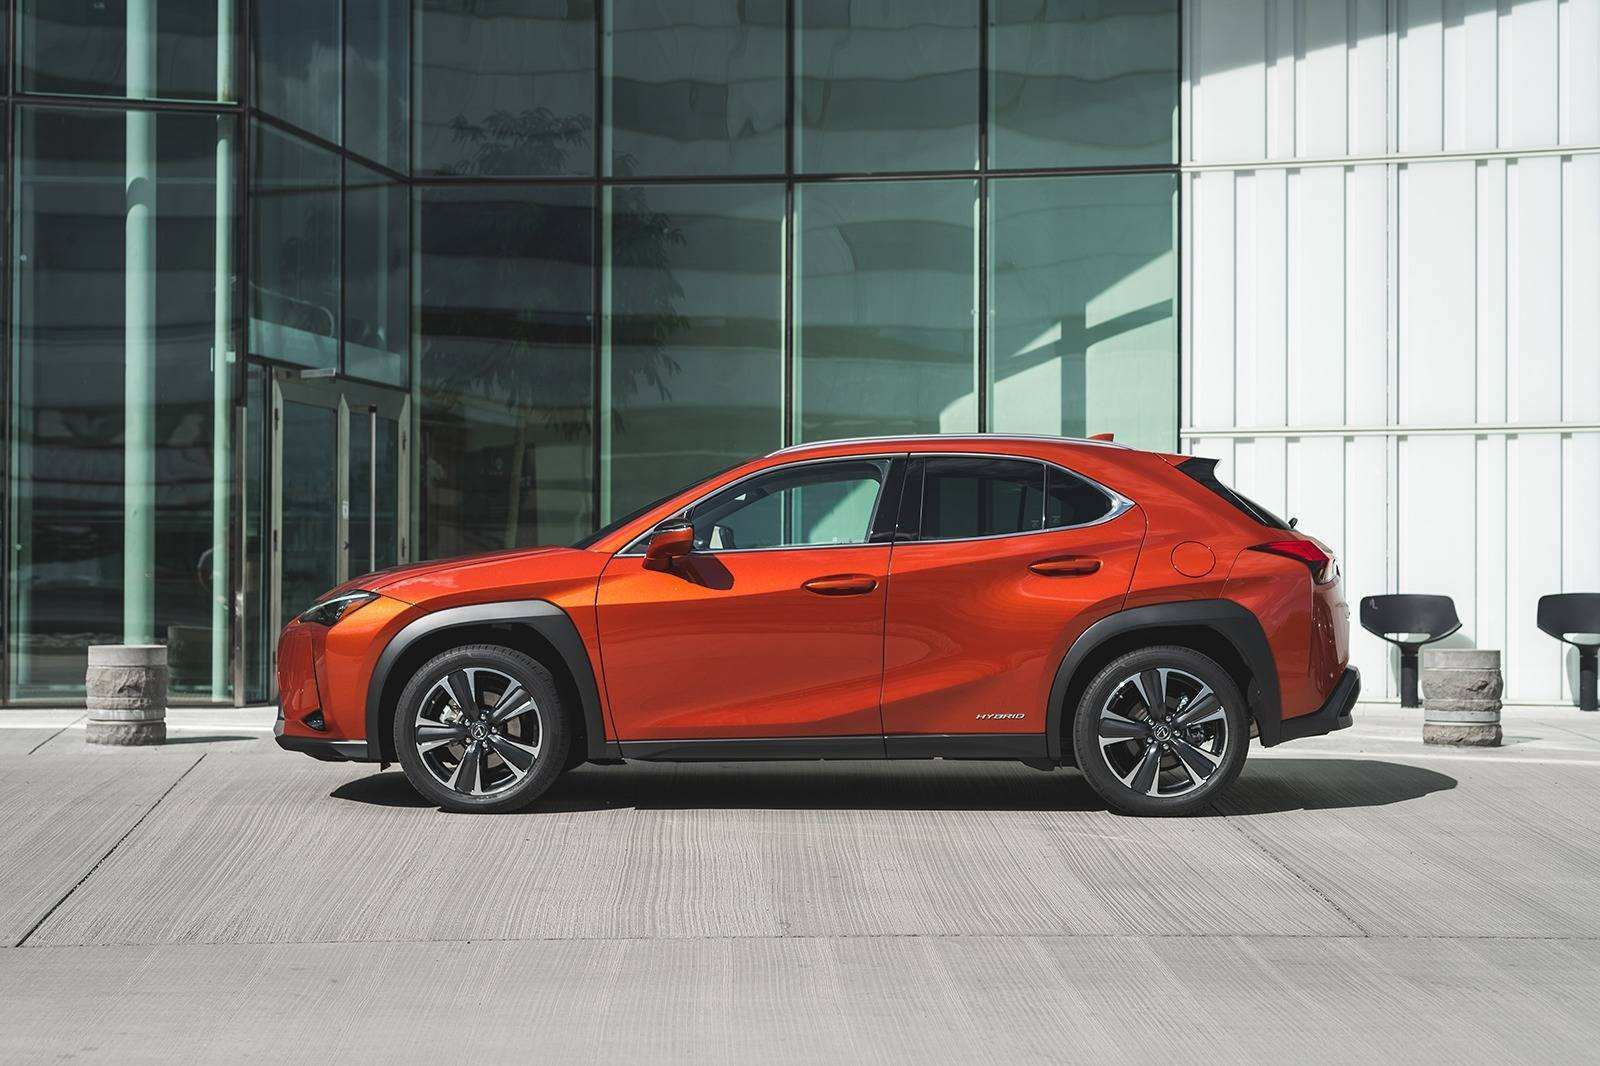 70 Best Review 2019 Lexus Ux Hybrid Ratings with 2019 Lexus Ux Hybrid